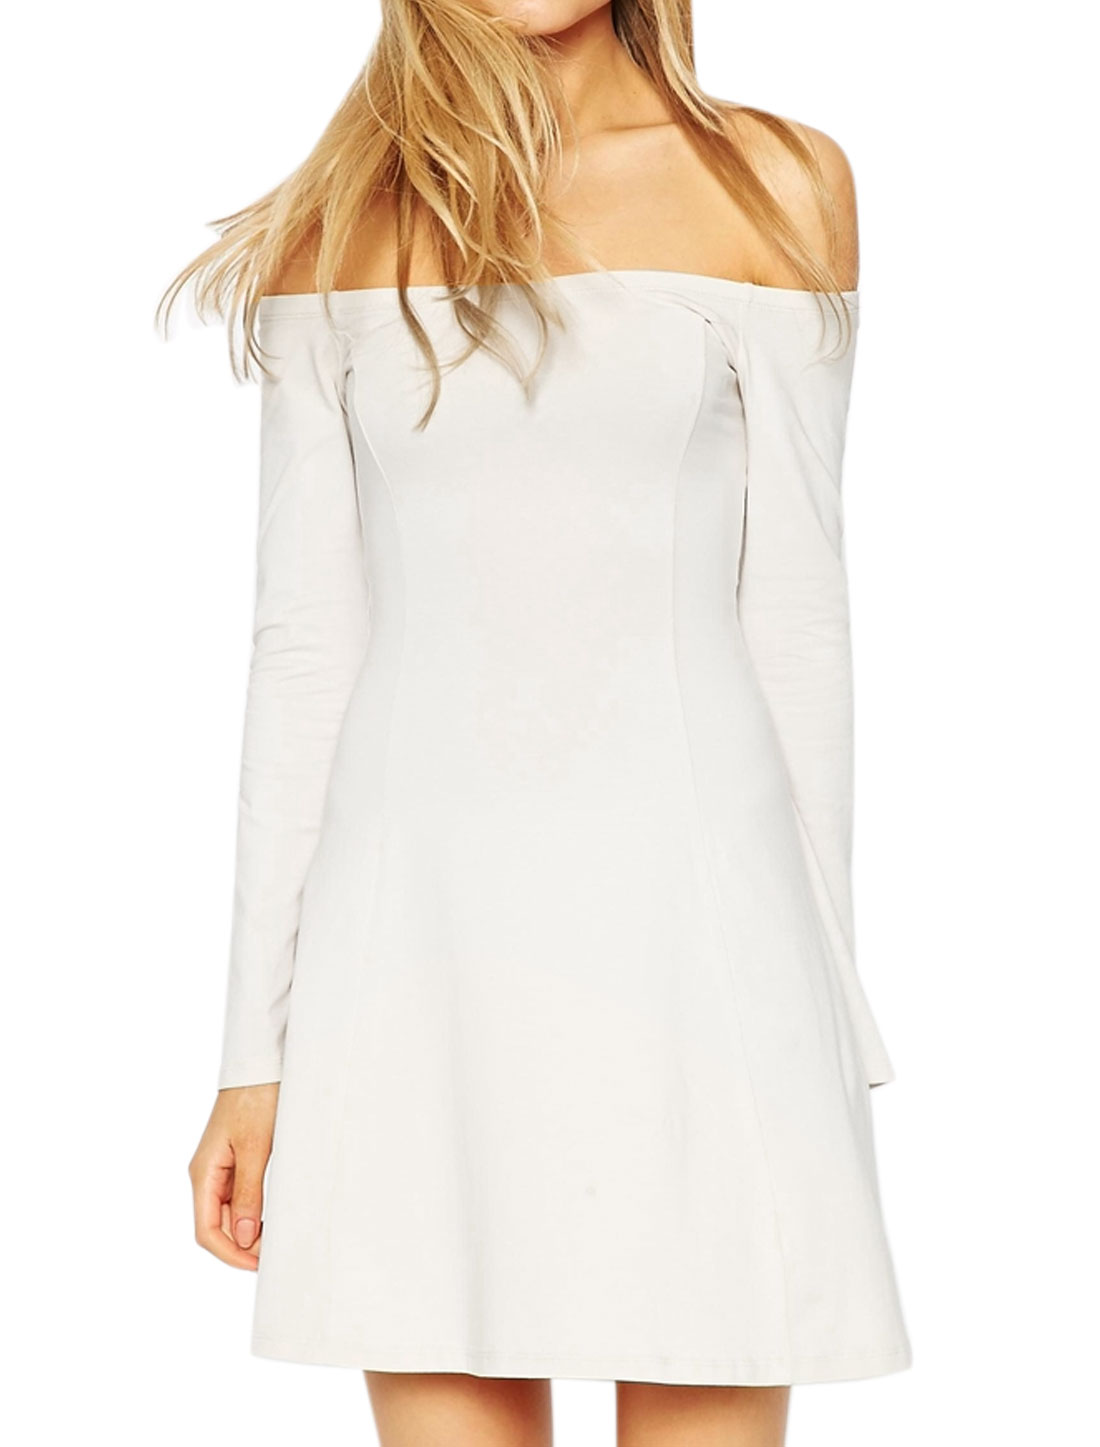 Women Off the Shoulder Long Sleeves Fit and Flare Dress White L